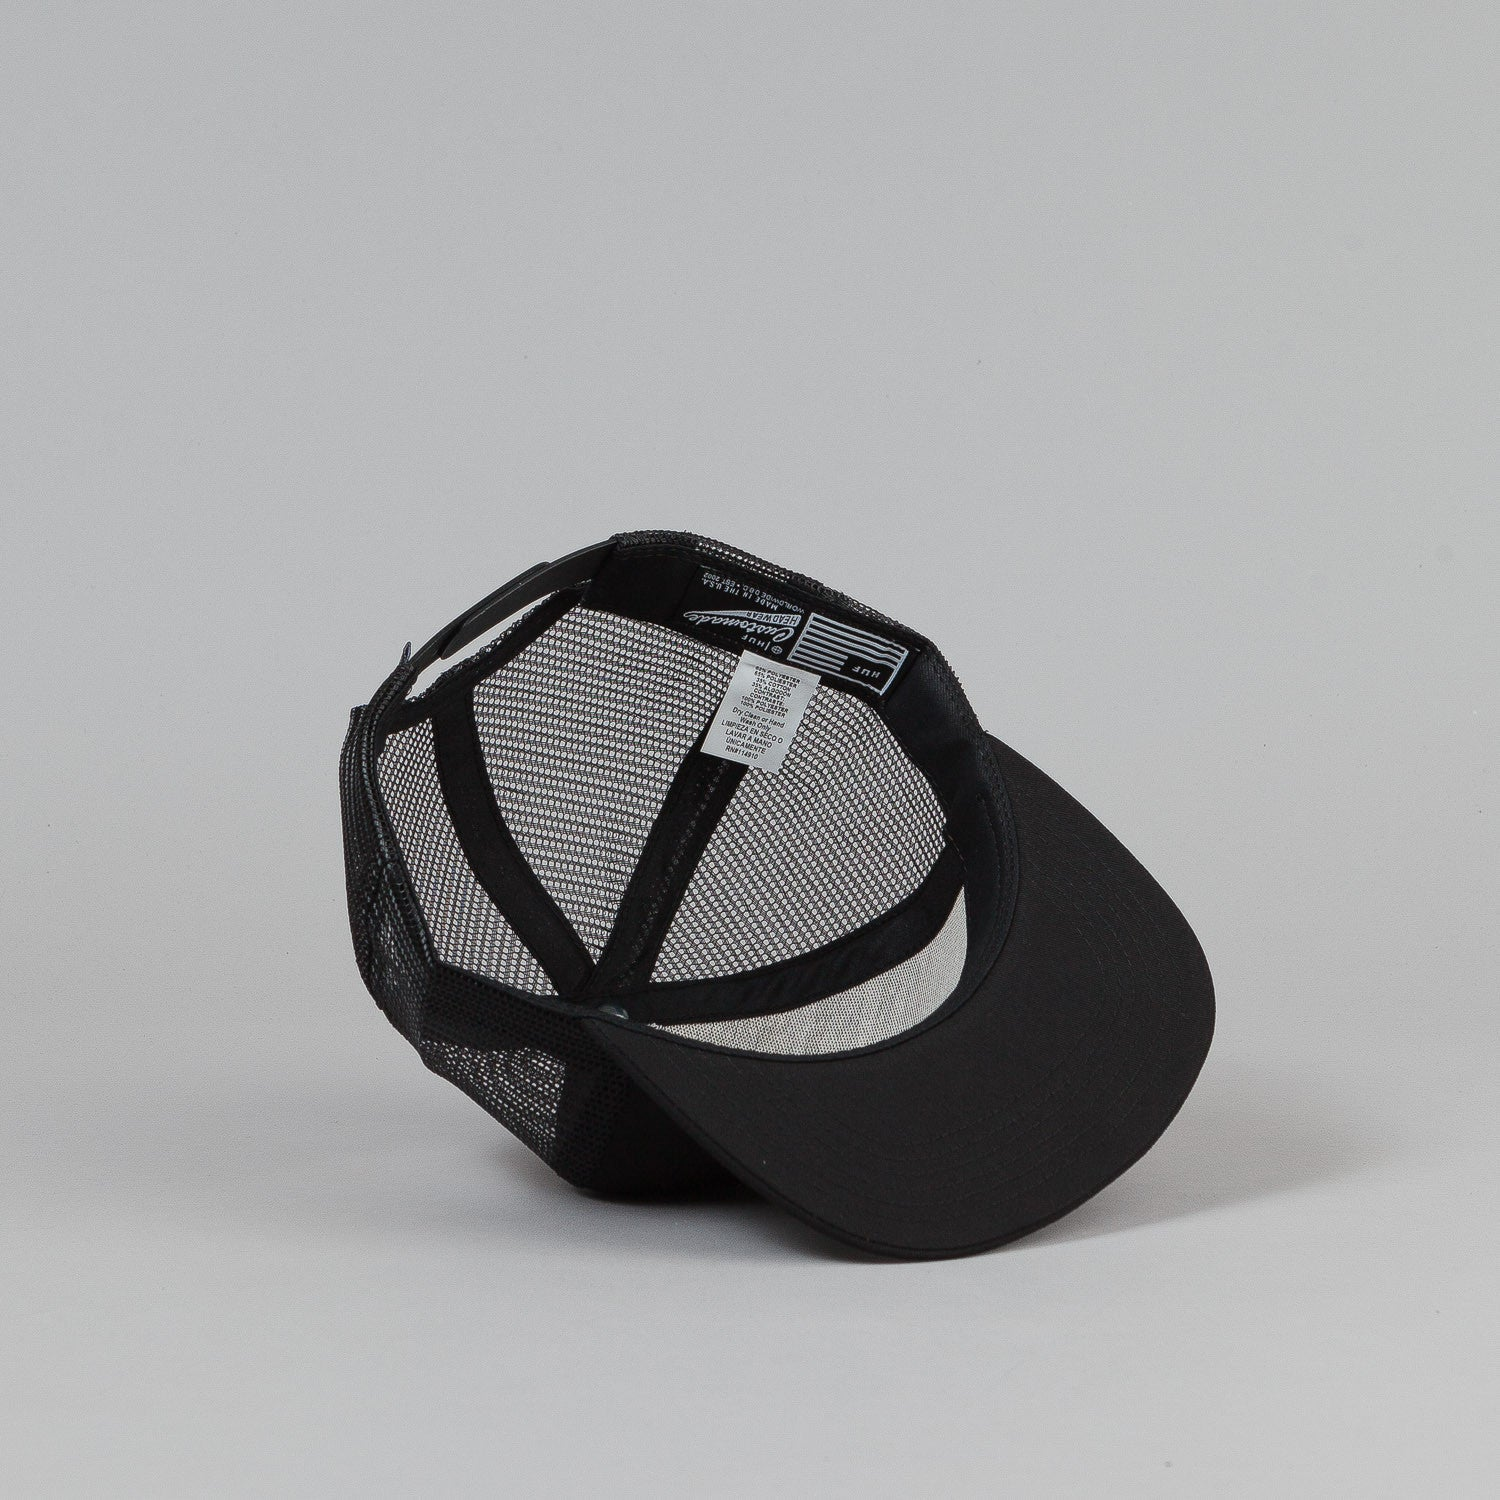 HUF Triple Triangle Trucker Cap - Black